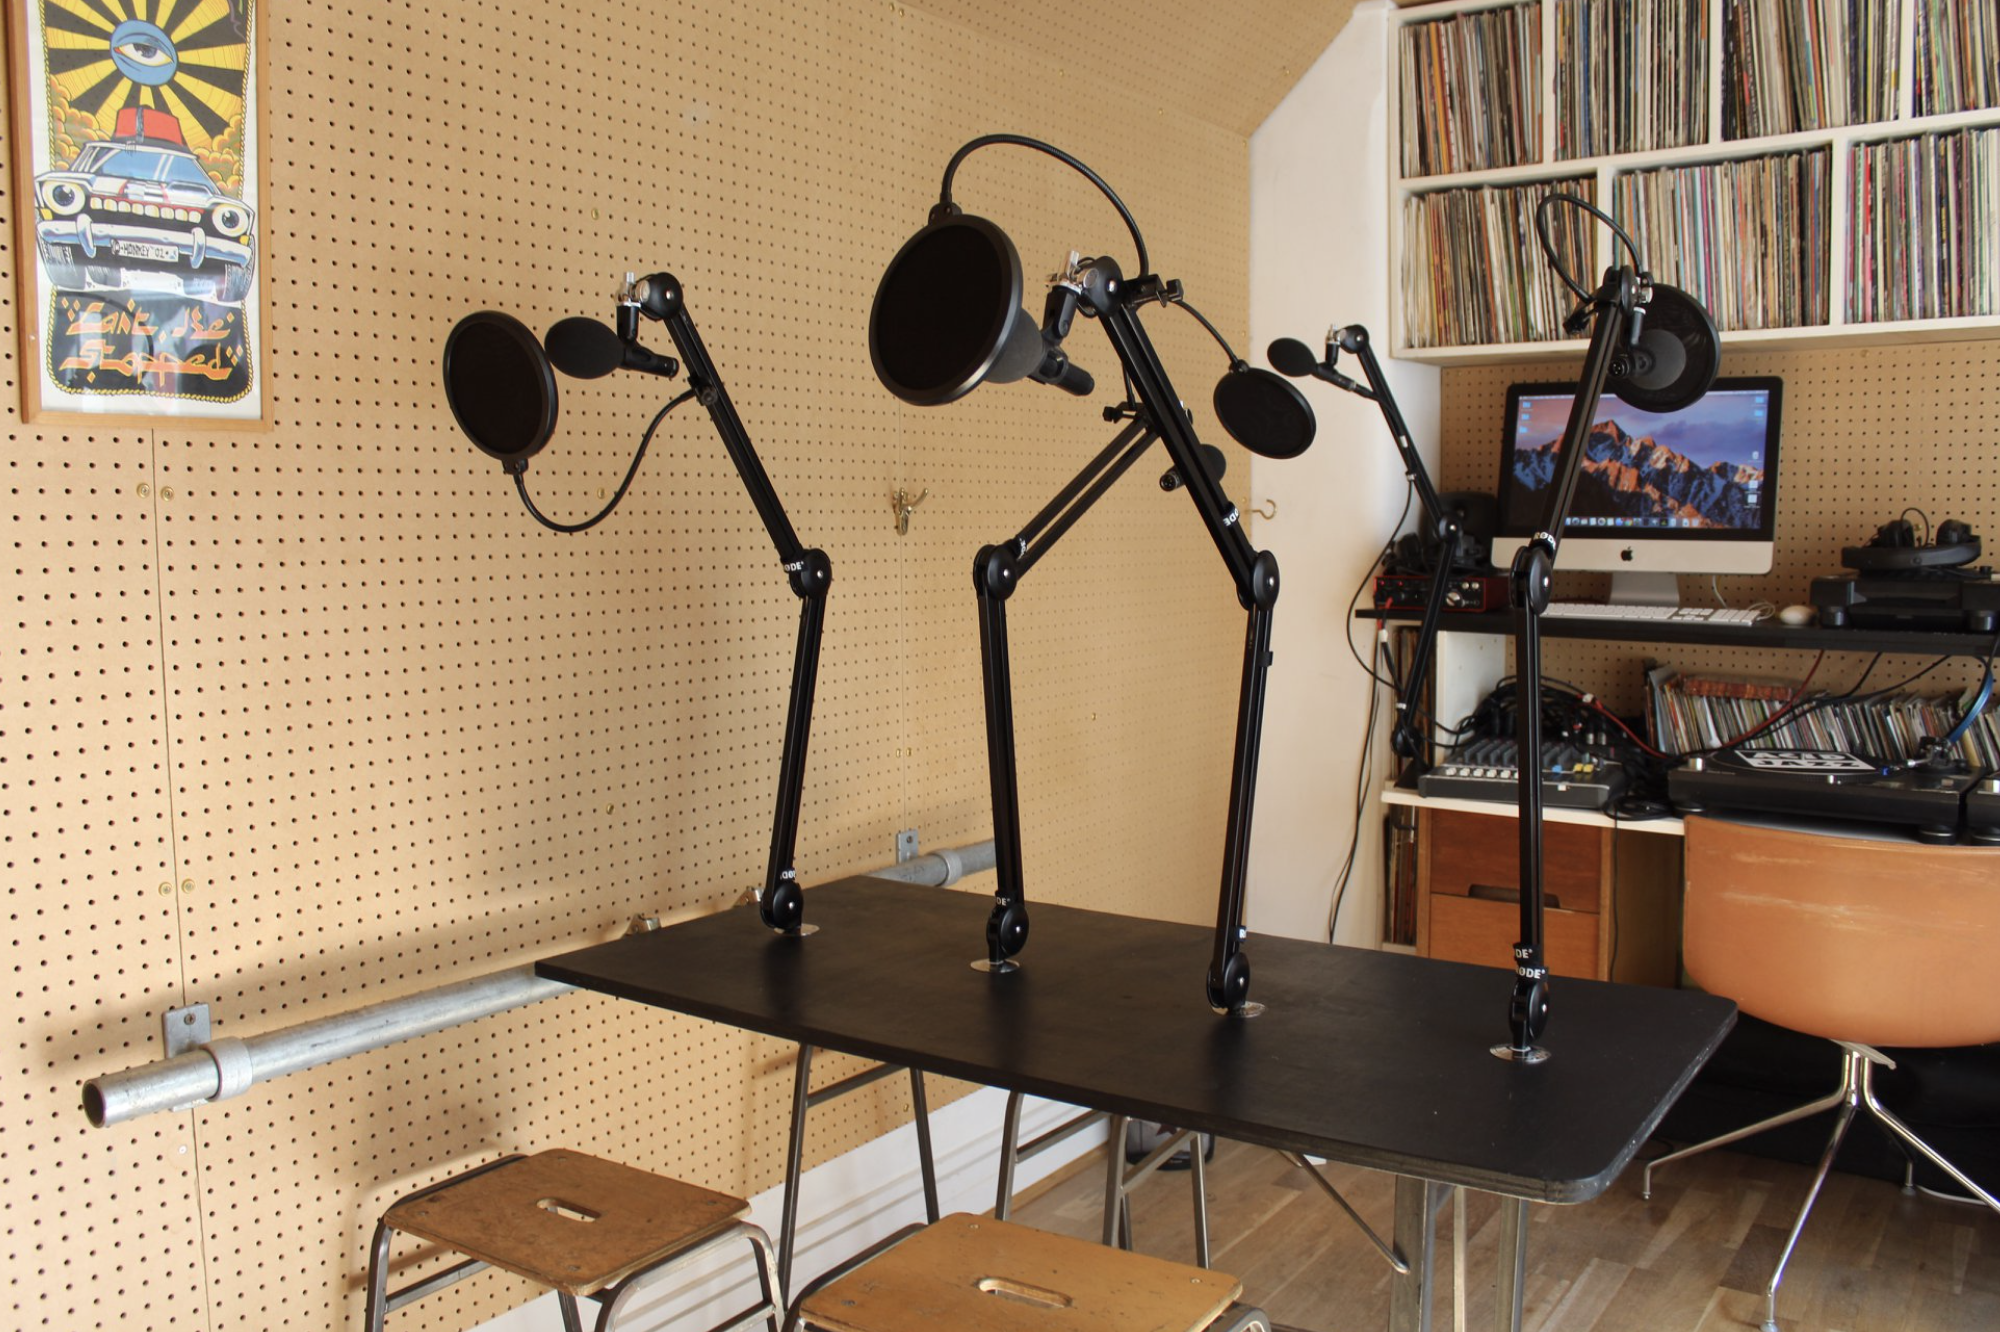 soho-radio-studios_podcast-recording-studio-06_studio-equipment